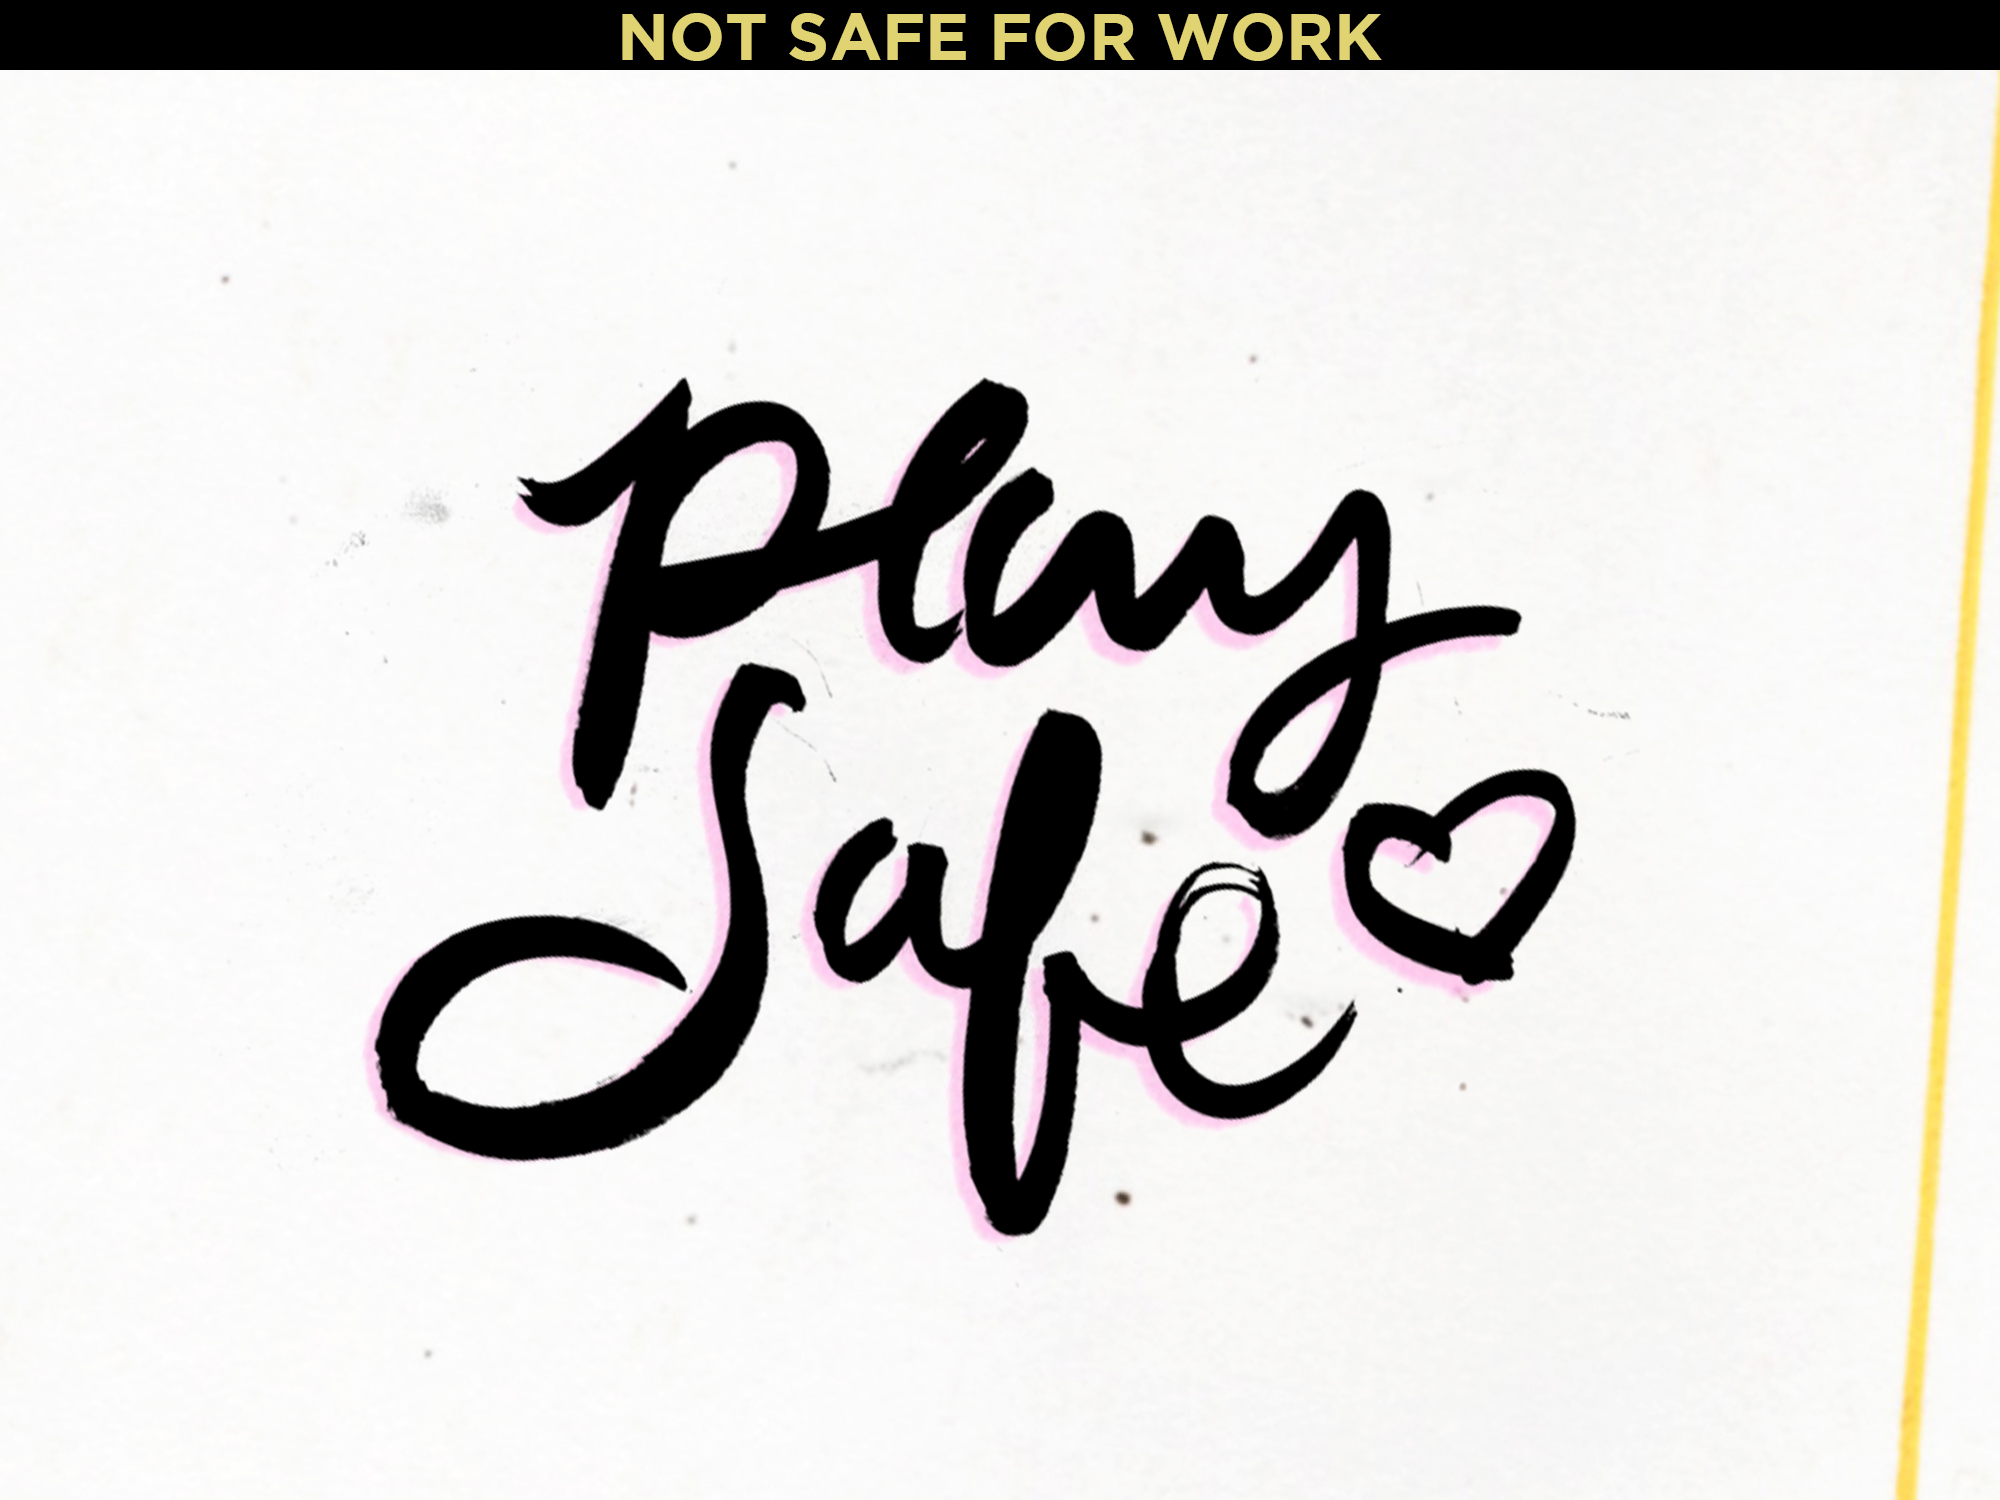 Play Safe |   NOT SAFE FOR WORK